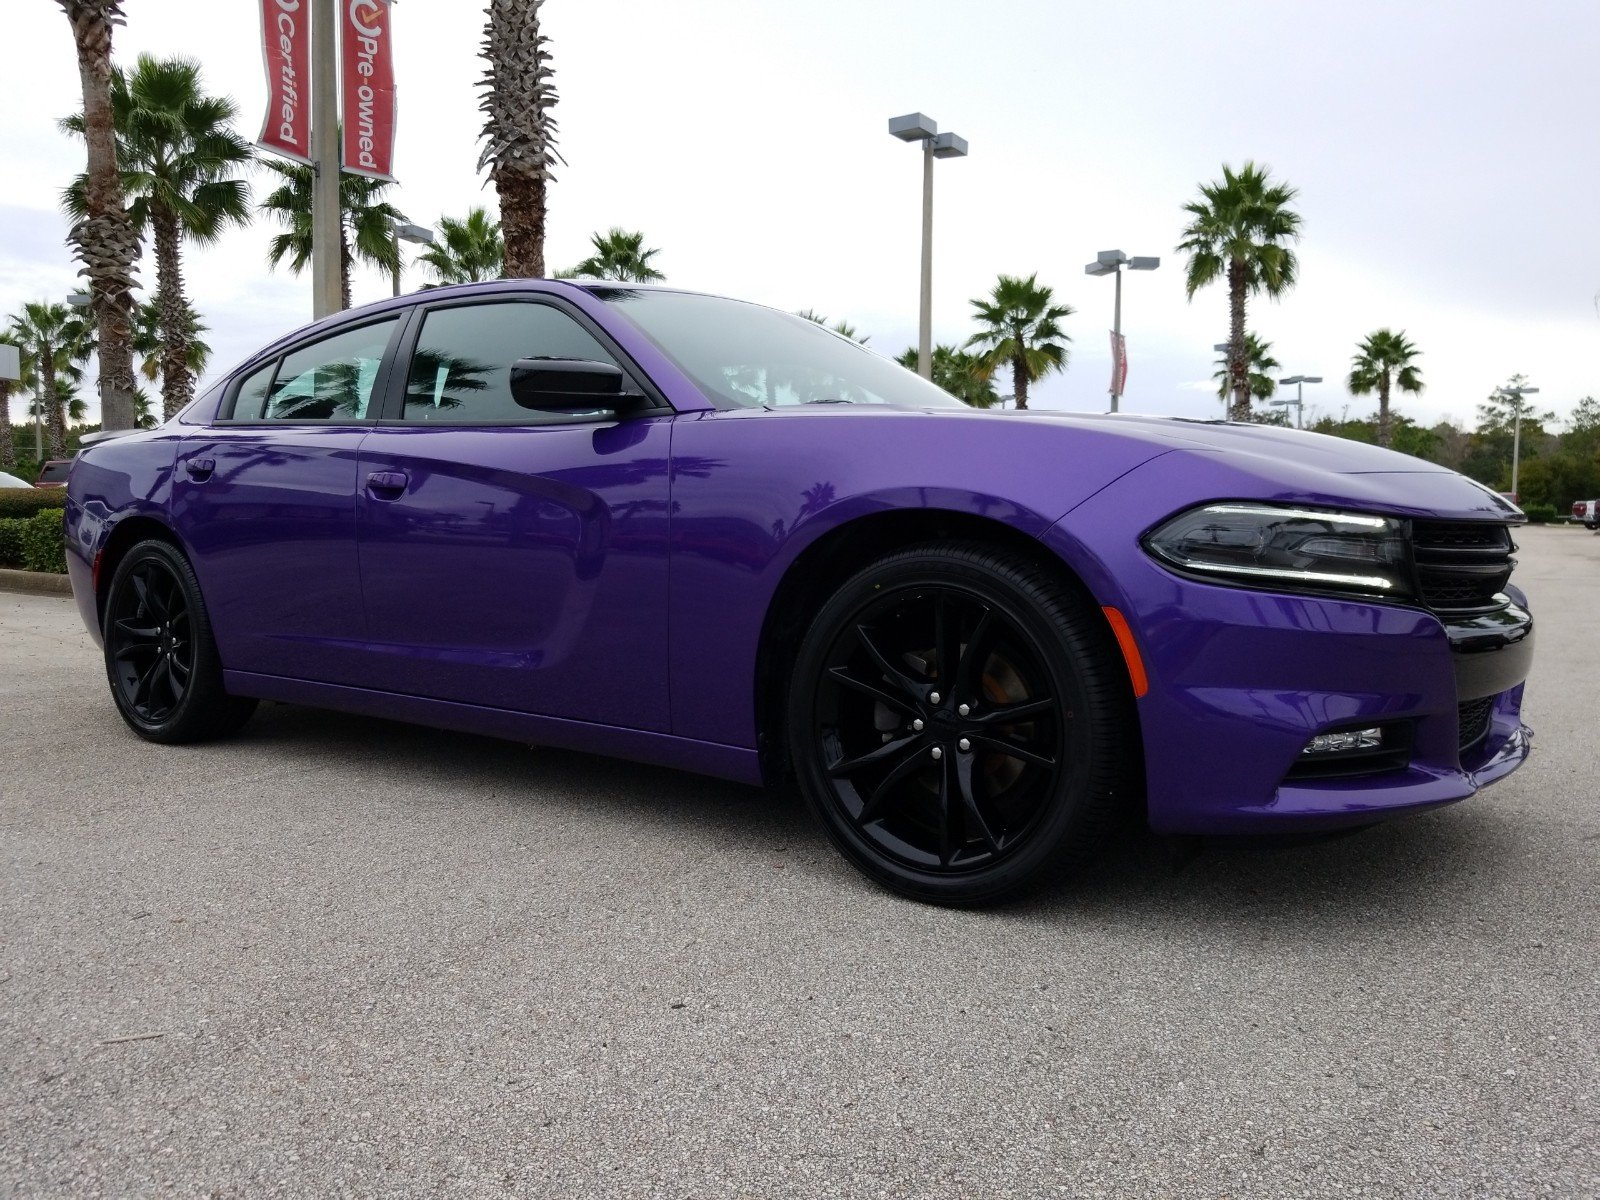 Certified Pre Owned 2016 Dodge Charger SXT 4dr Car in Daytona Beach